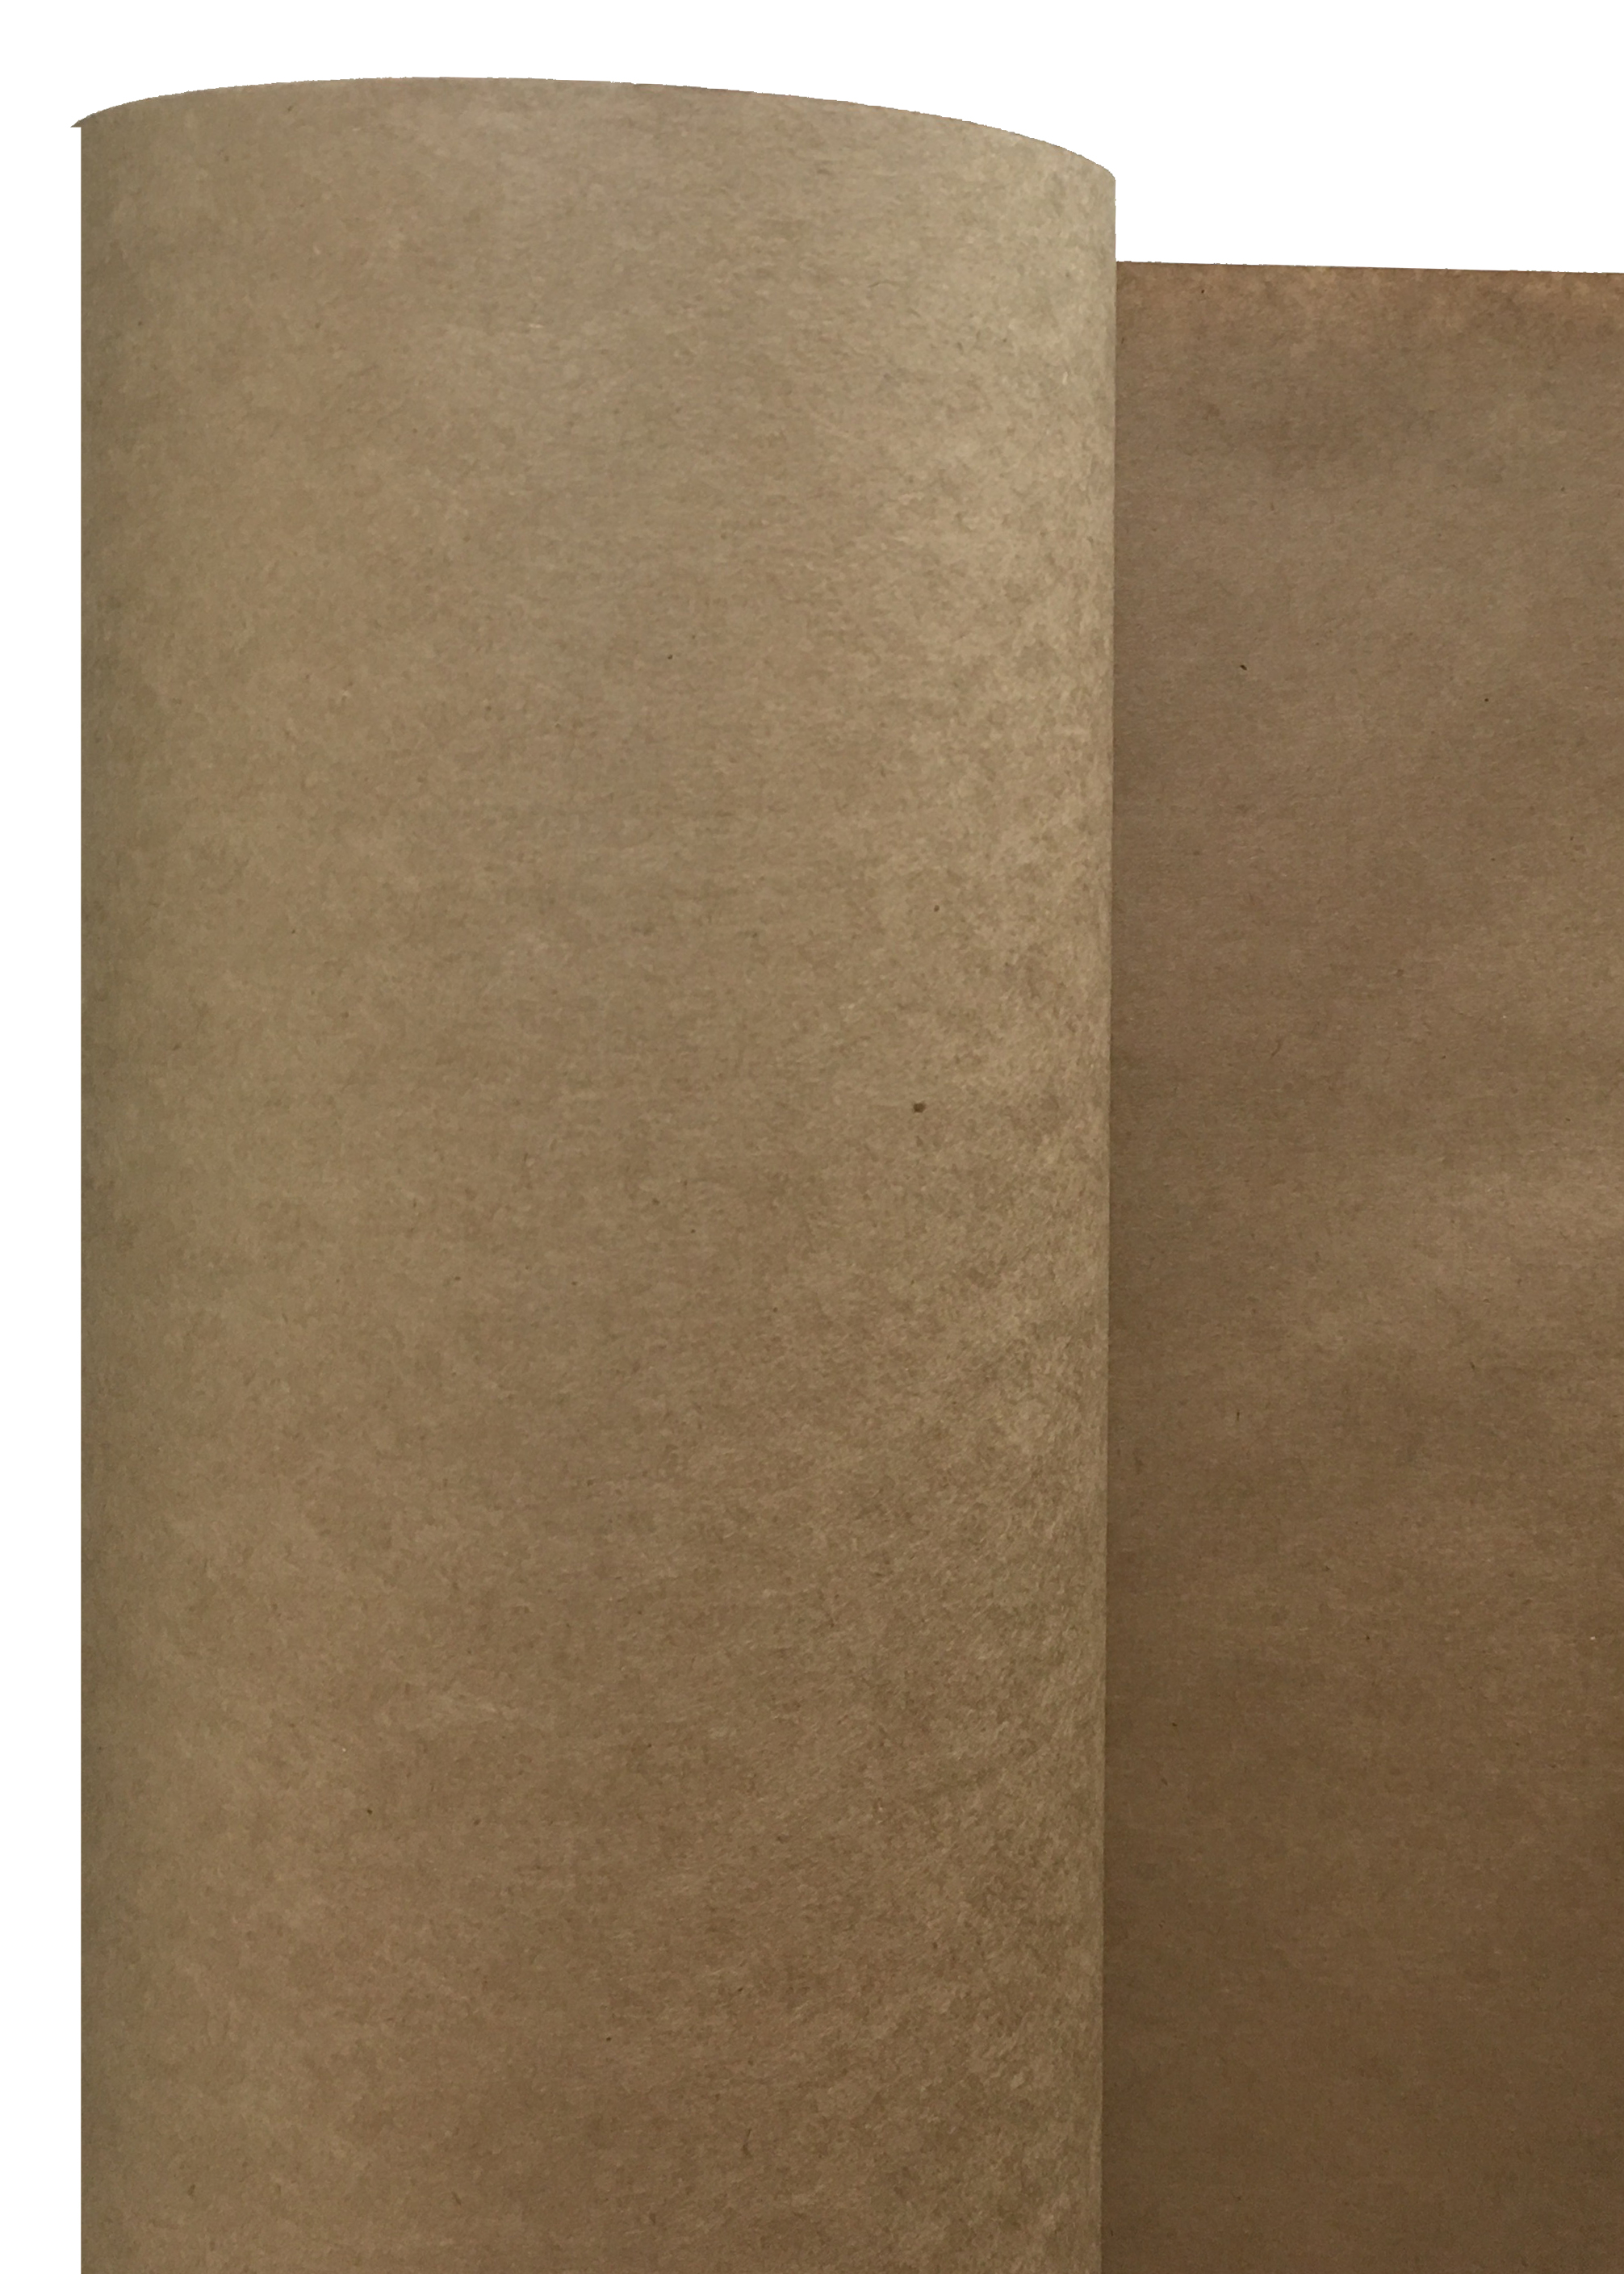 Roll of kraft brown paper 48 5 yards for Brown craft paper rolls